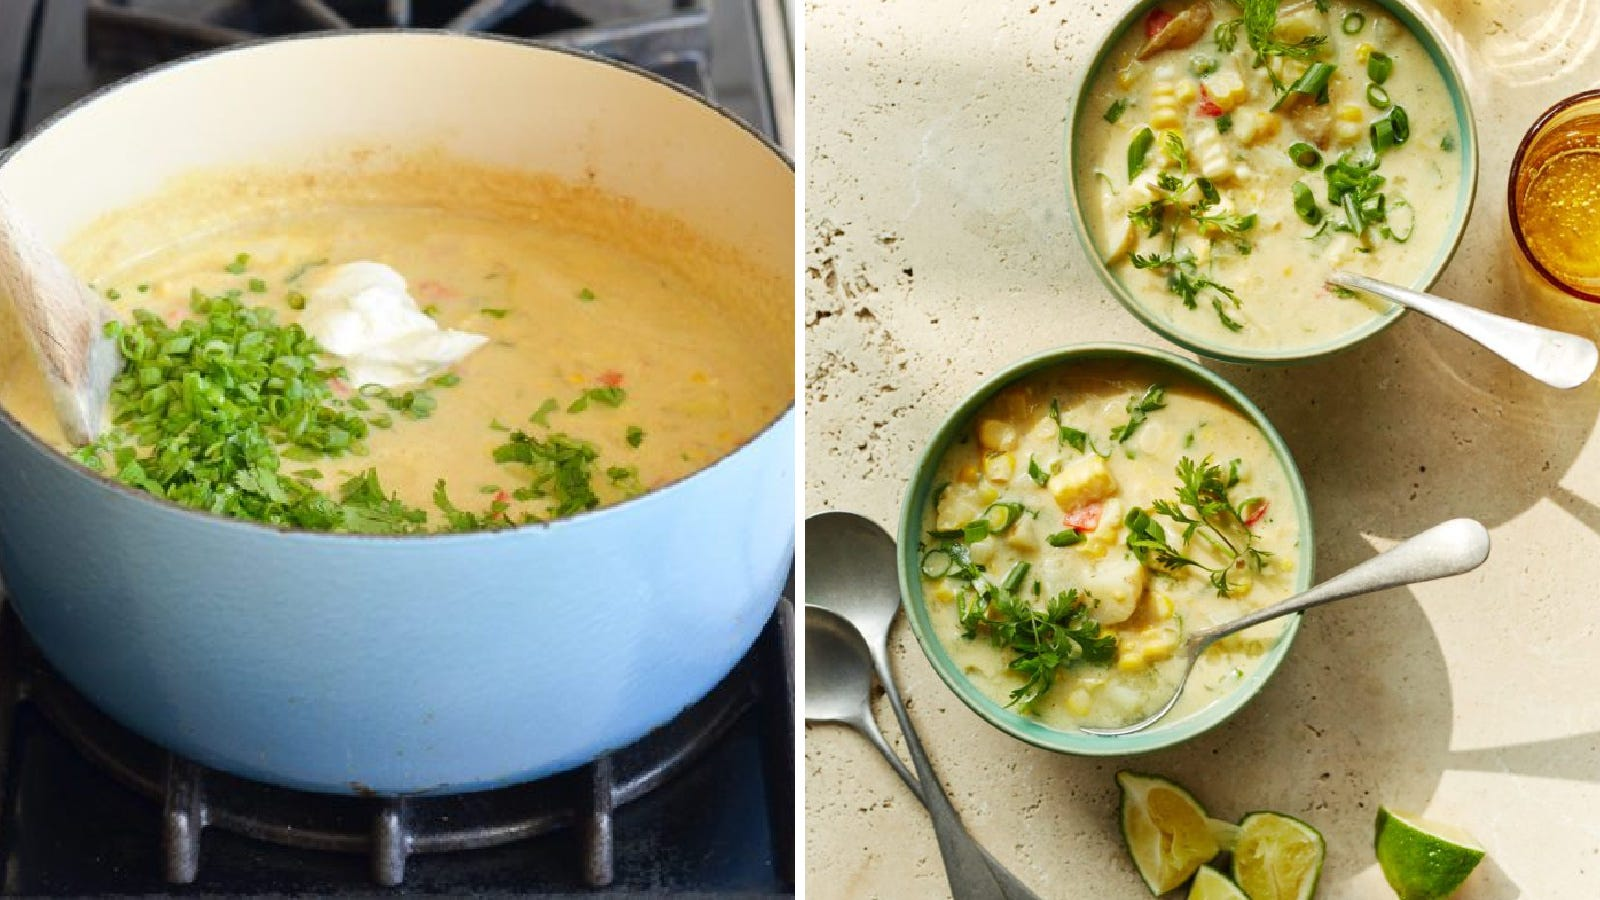 Two images displaying corn chowder made in an enameled Dutch oven by Once Upon a Chef.